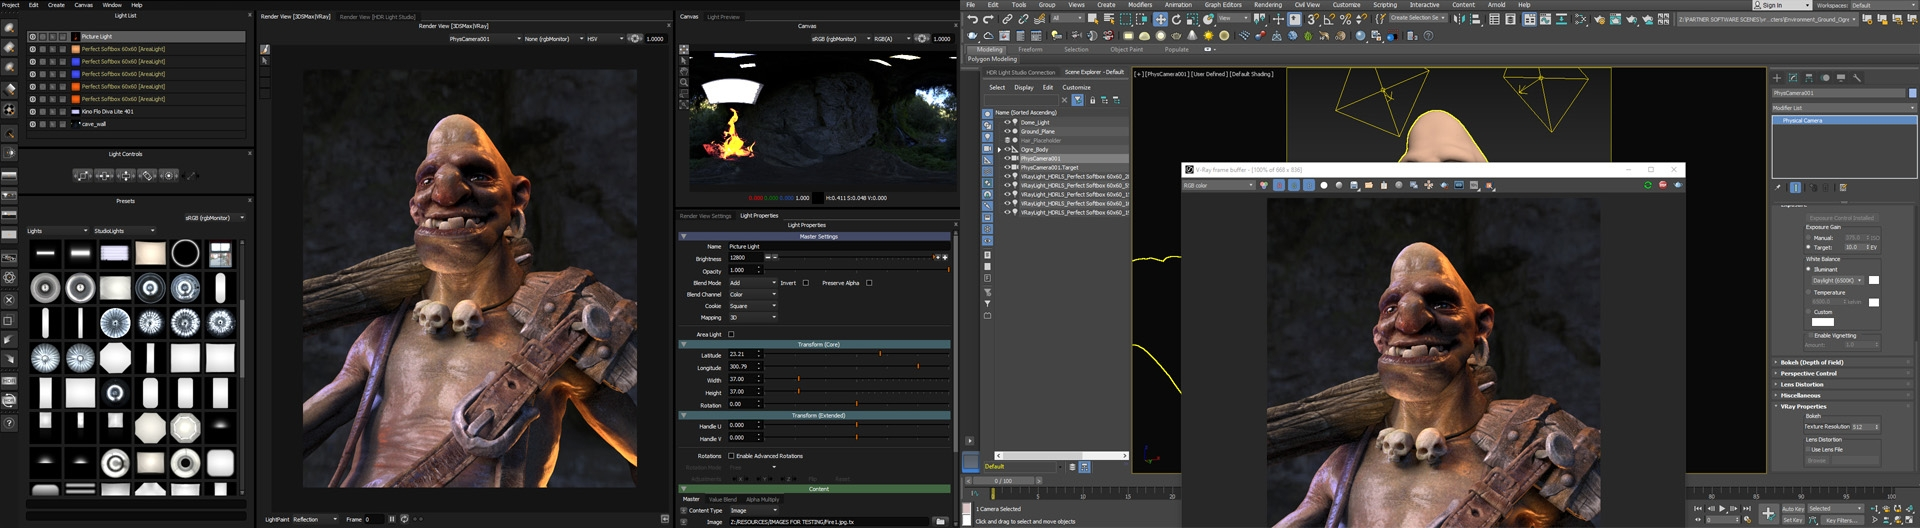 HDR Light Studio connected to 3ds Max